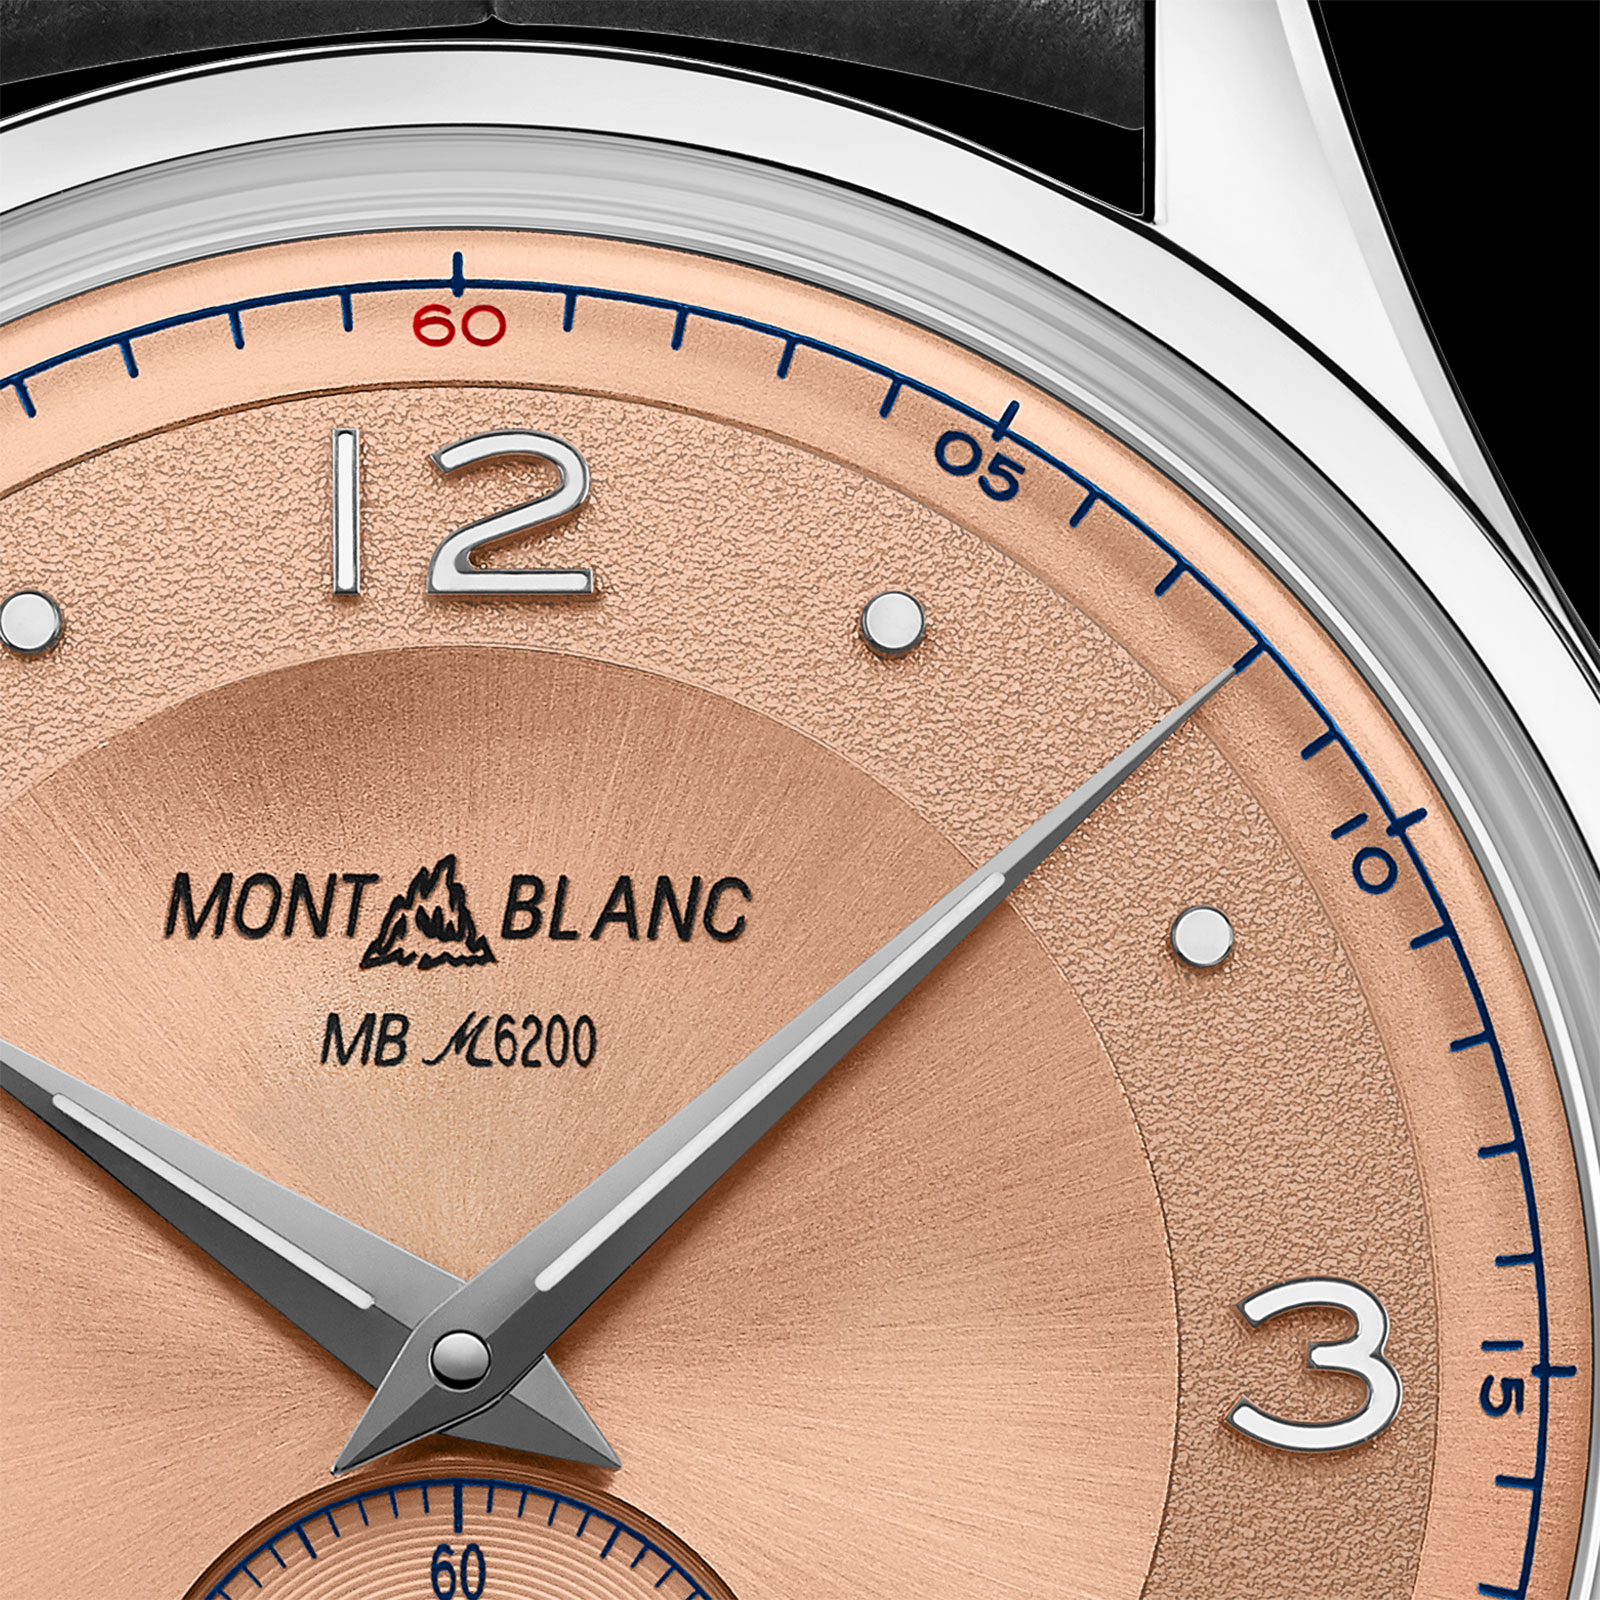 https://watchesbysjx.com/wp-content/uploads/2019/11/Montblanc-Heritage-Small-Second-Limited-Edition-38-1.jpg